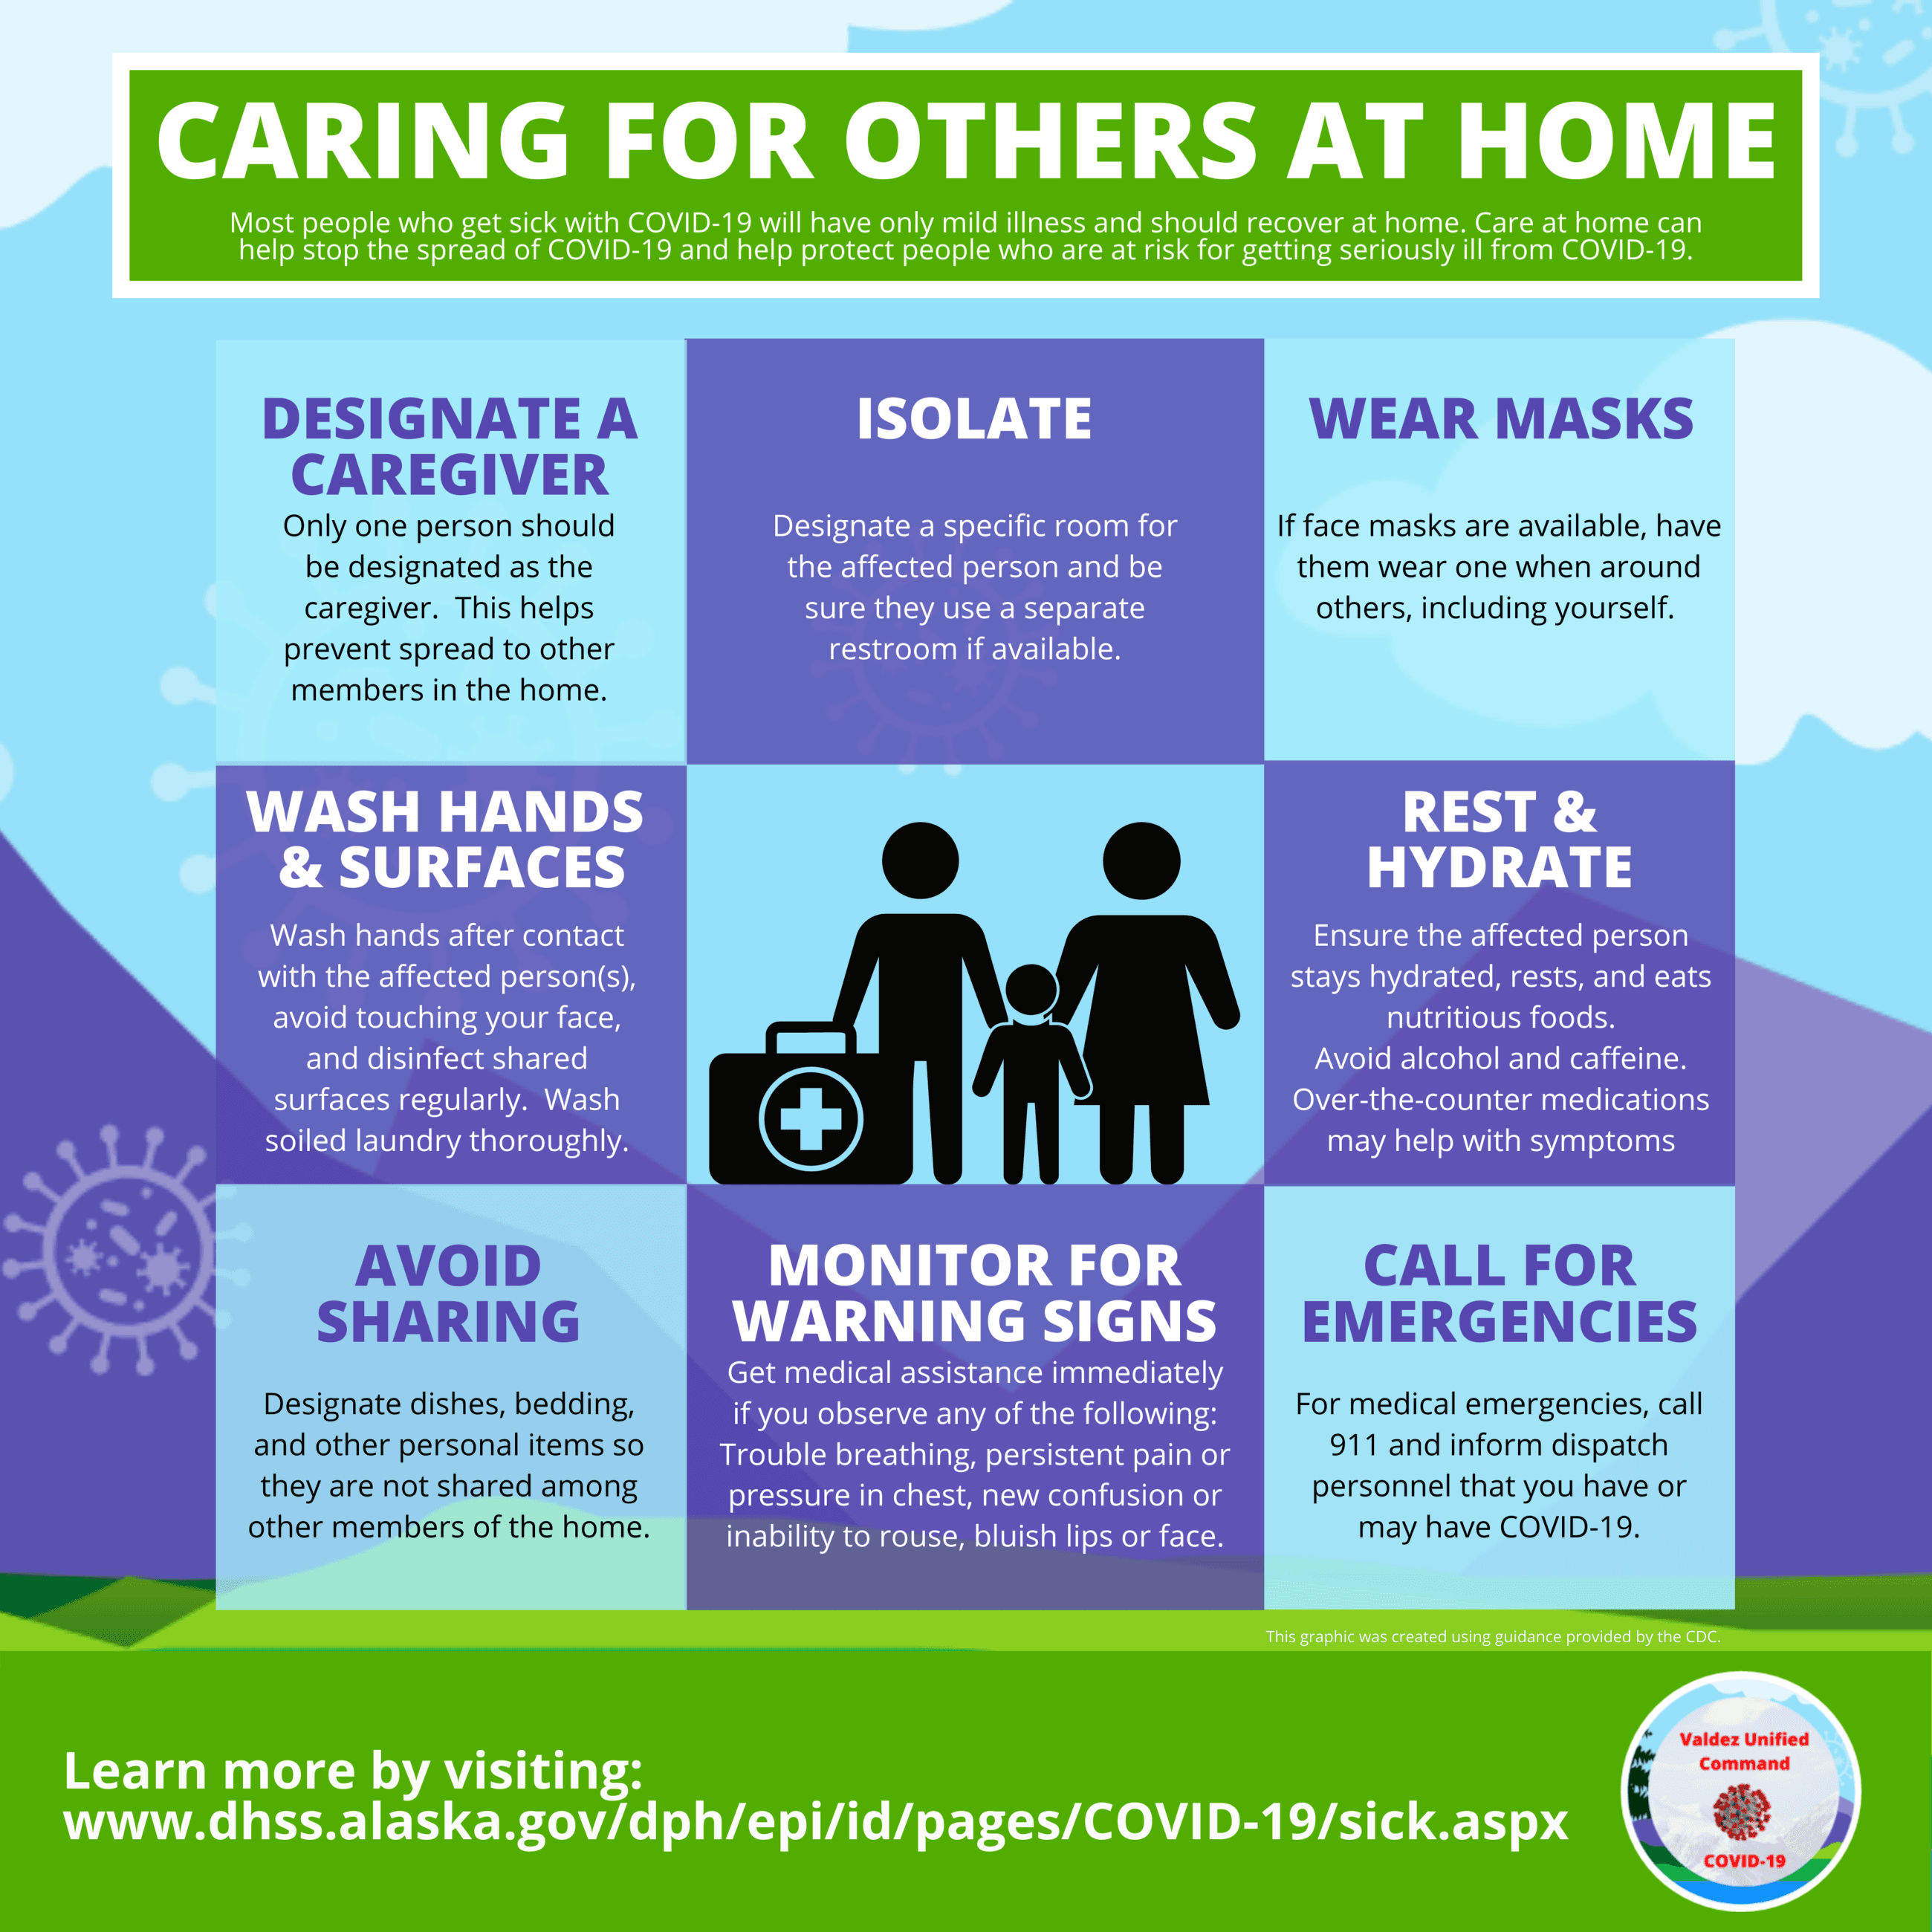 Caring for Others_Manage Symptoms from Home 2